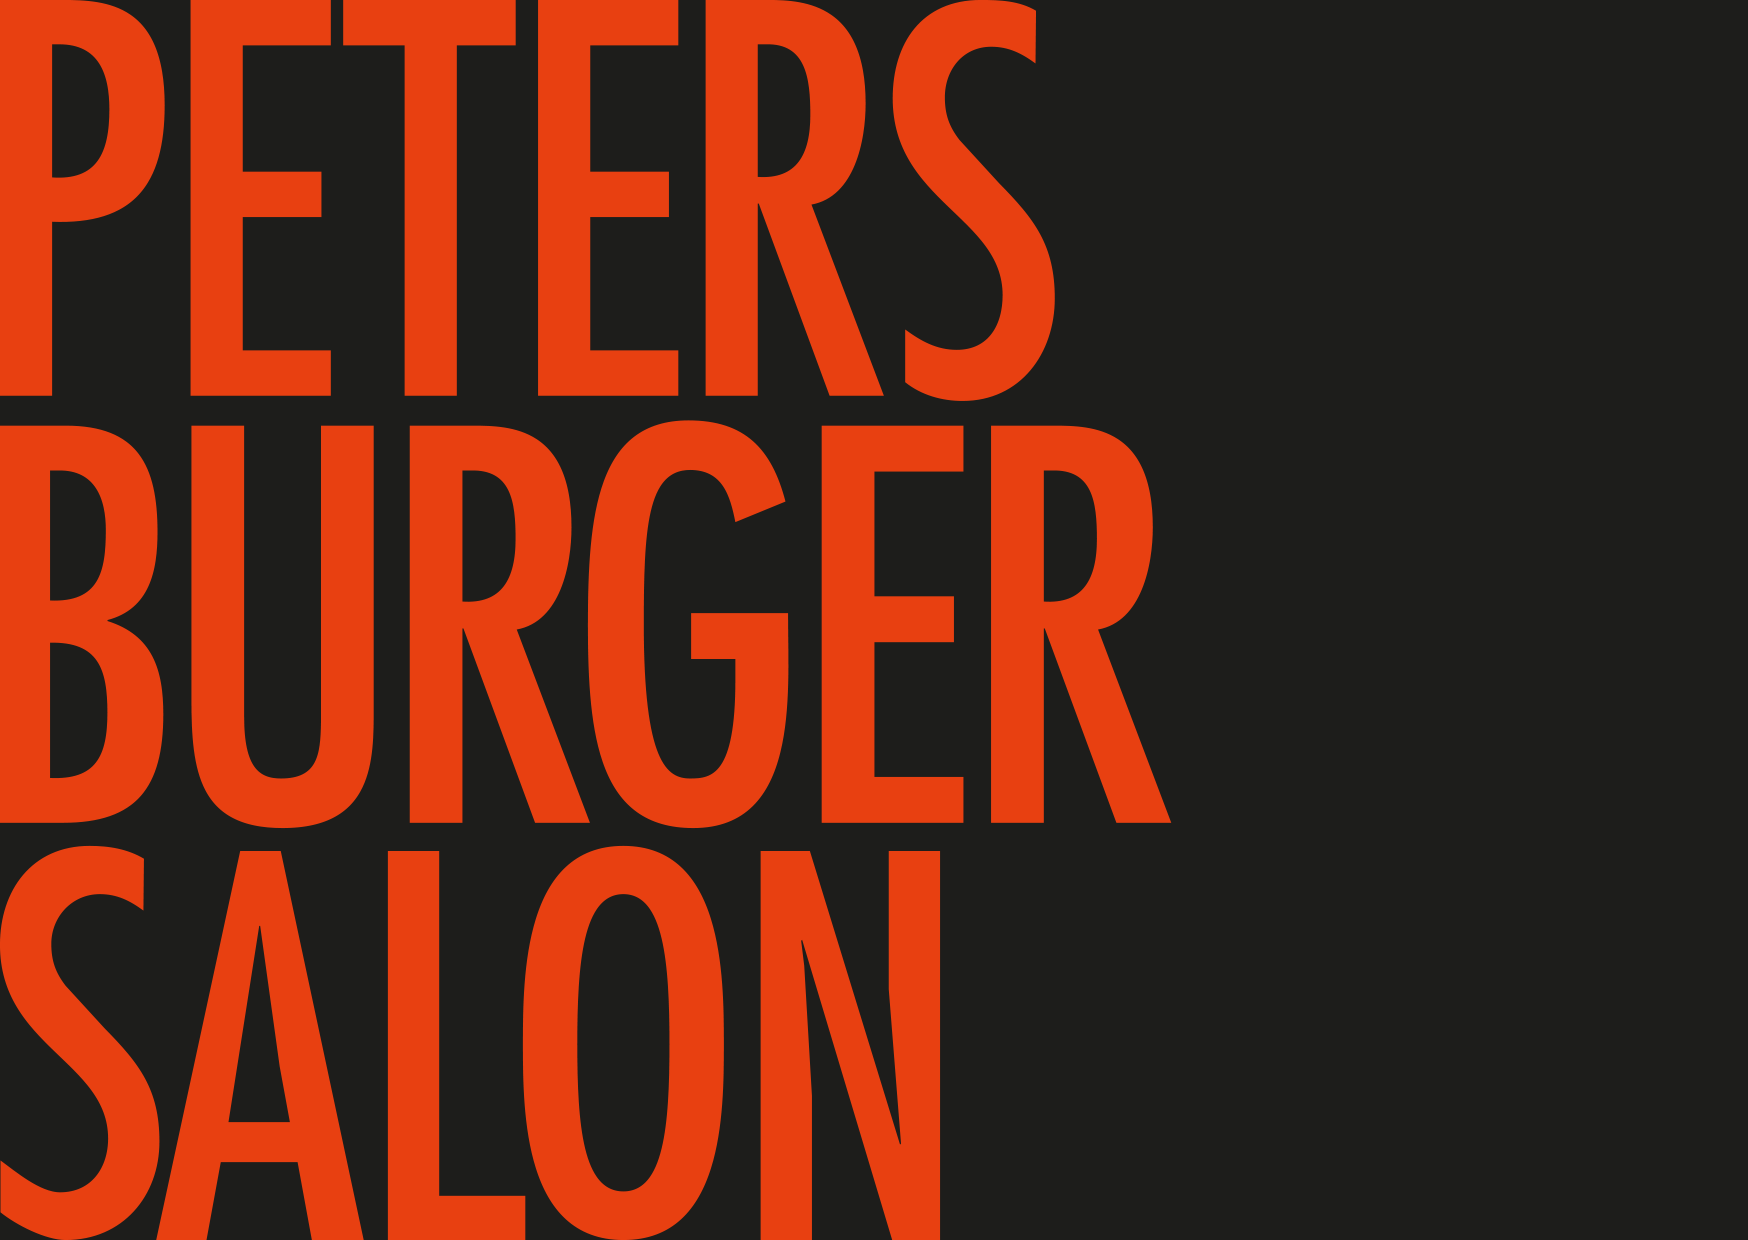 PETERSBURGER SALON